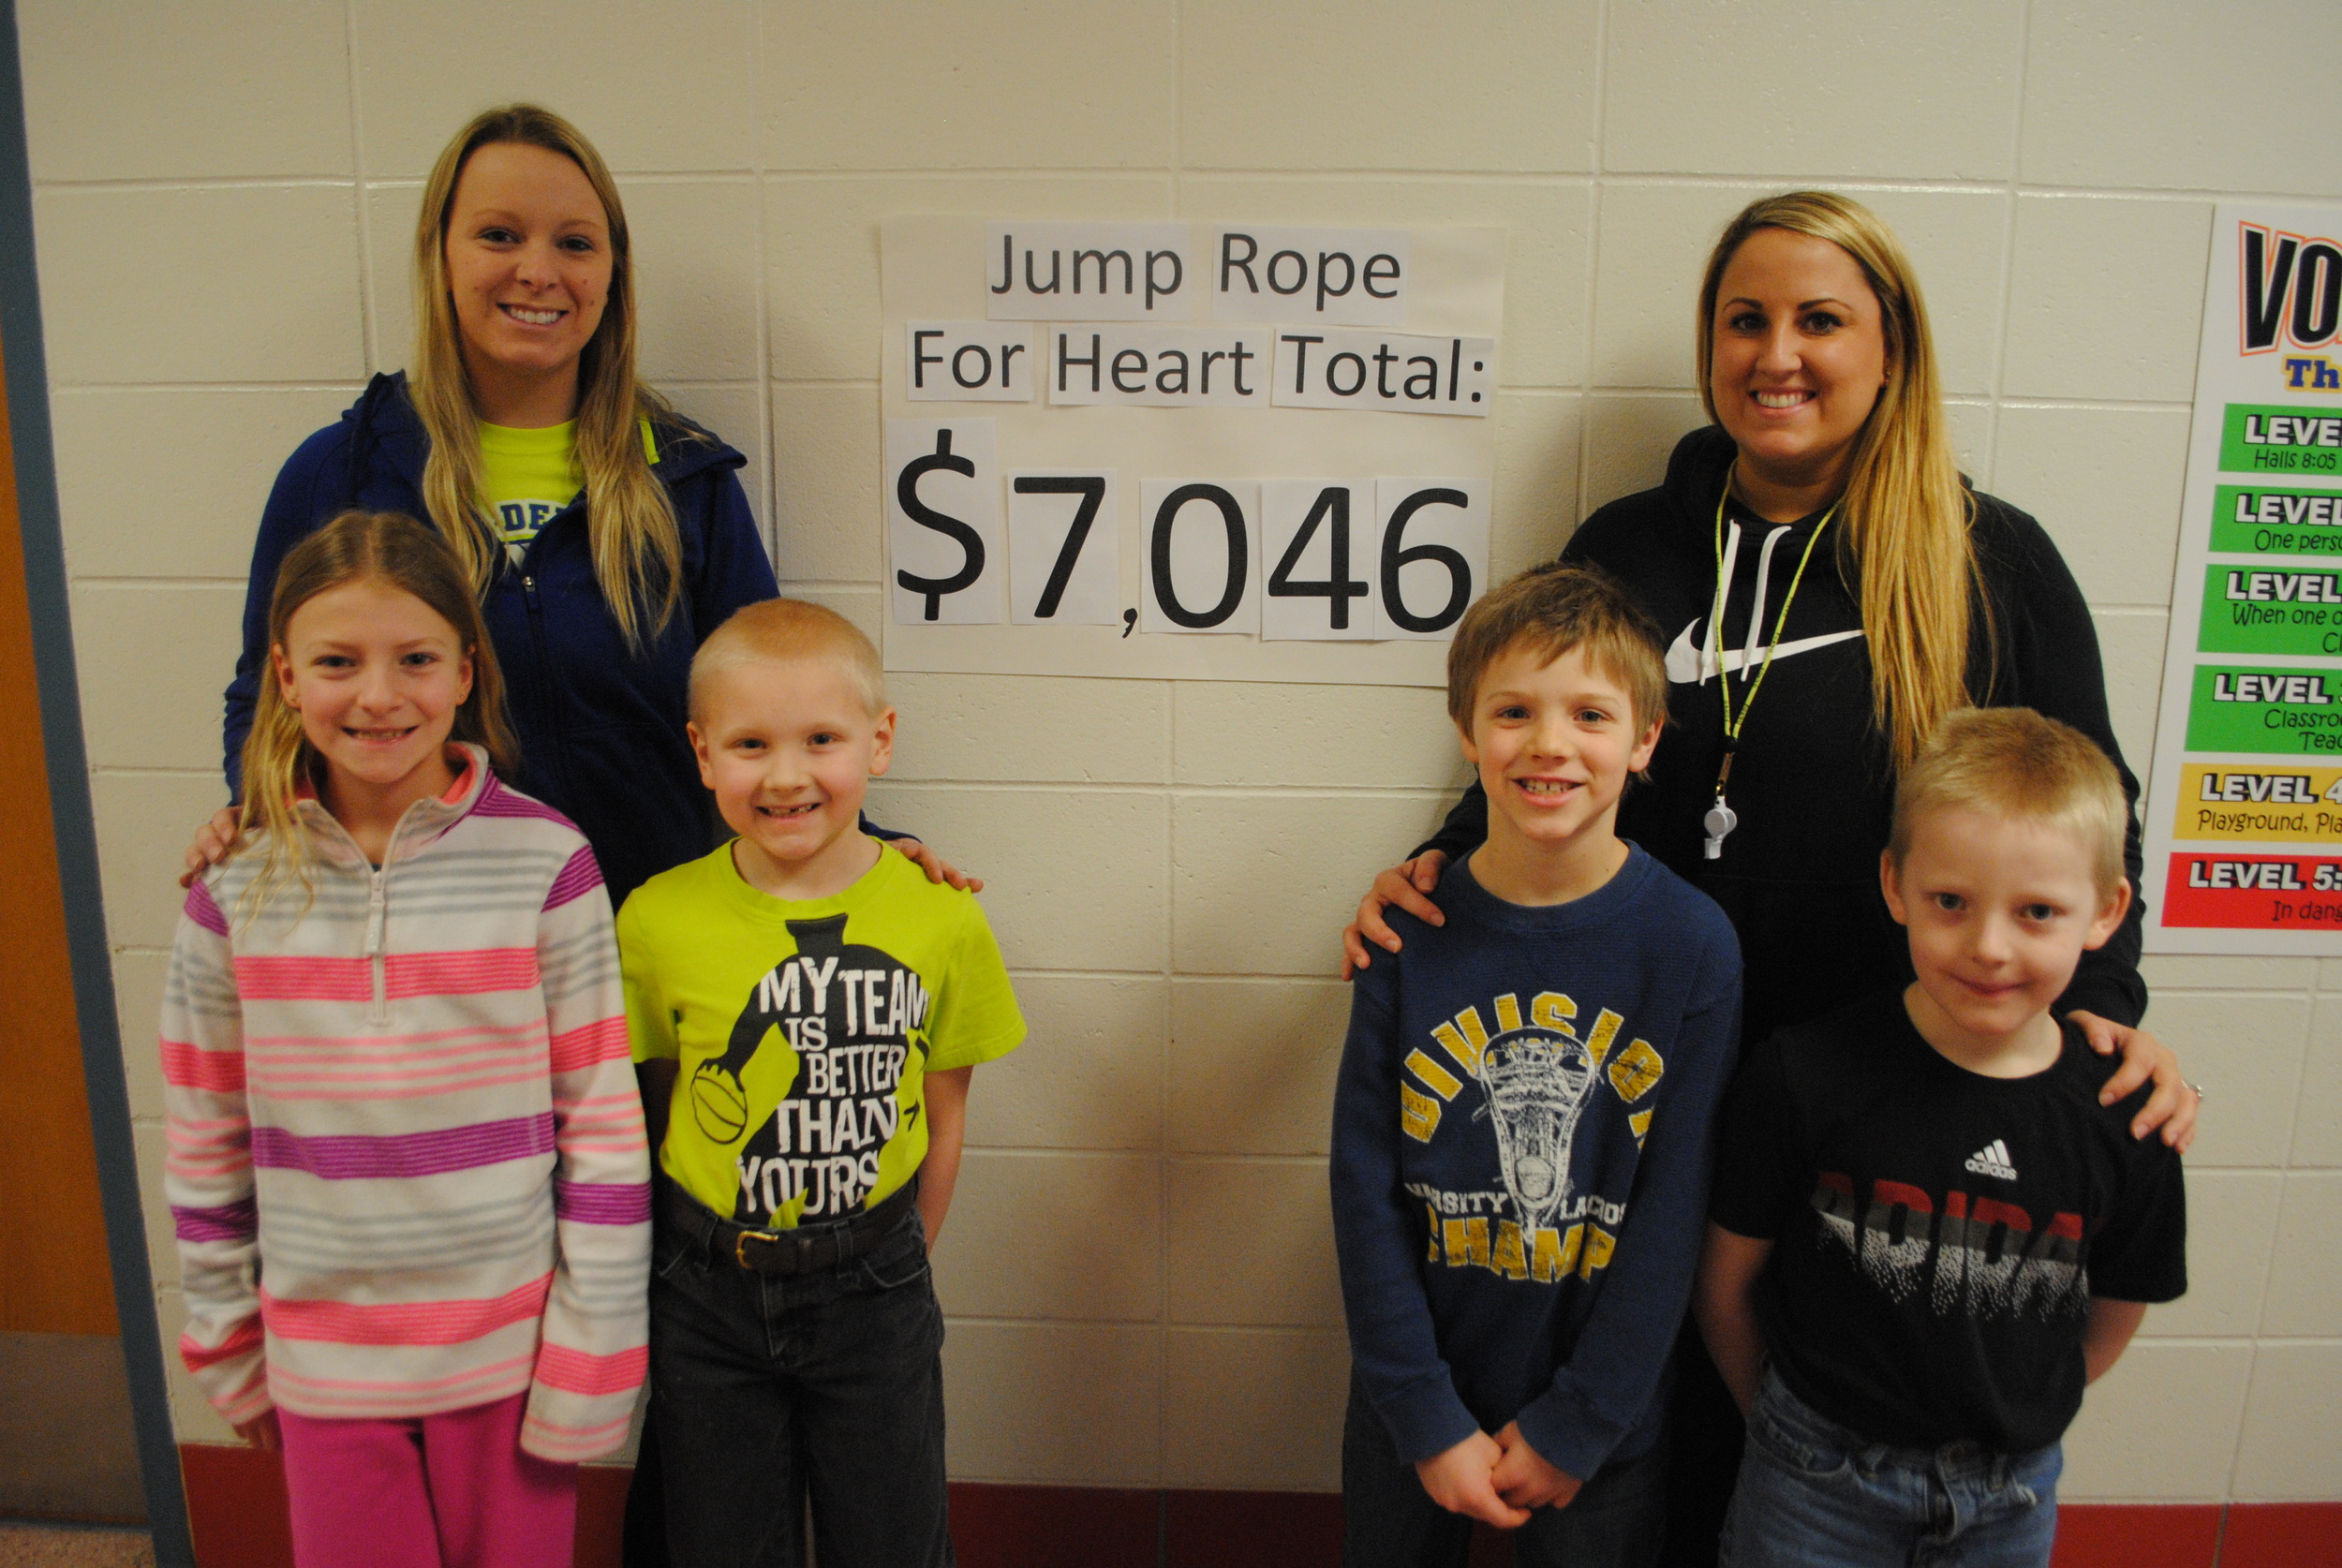 WDC Elementary surpassed their goal of $5,000 for Jump Rope for Heart, raising a whopping $7,046! Pictured with Physical Education teachers Katie Hill (left) and Danielle Jetvig-Renner, from left, are second-graders Montana Carsten, Axel Lindquist, Kobe Snyder and Logan Grangruth.